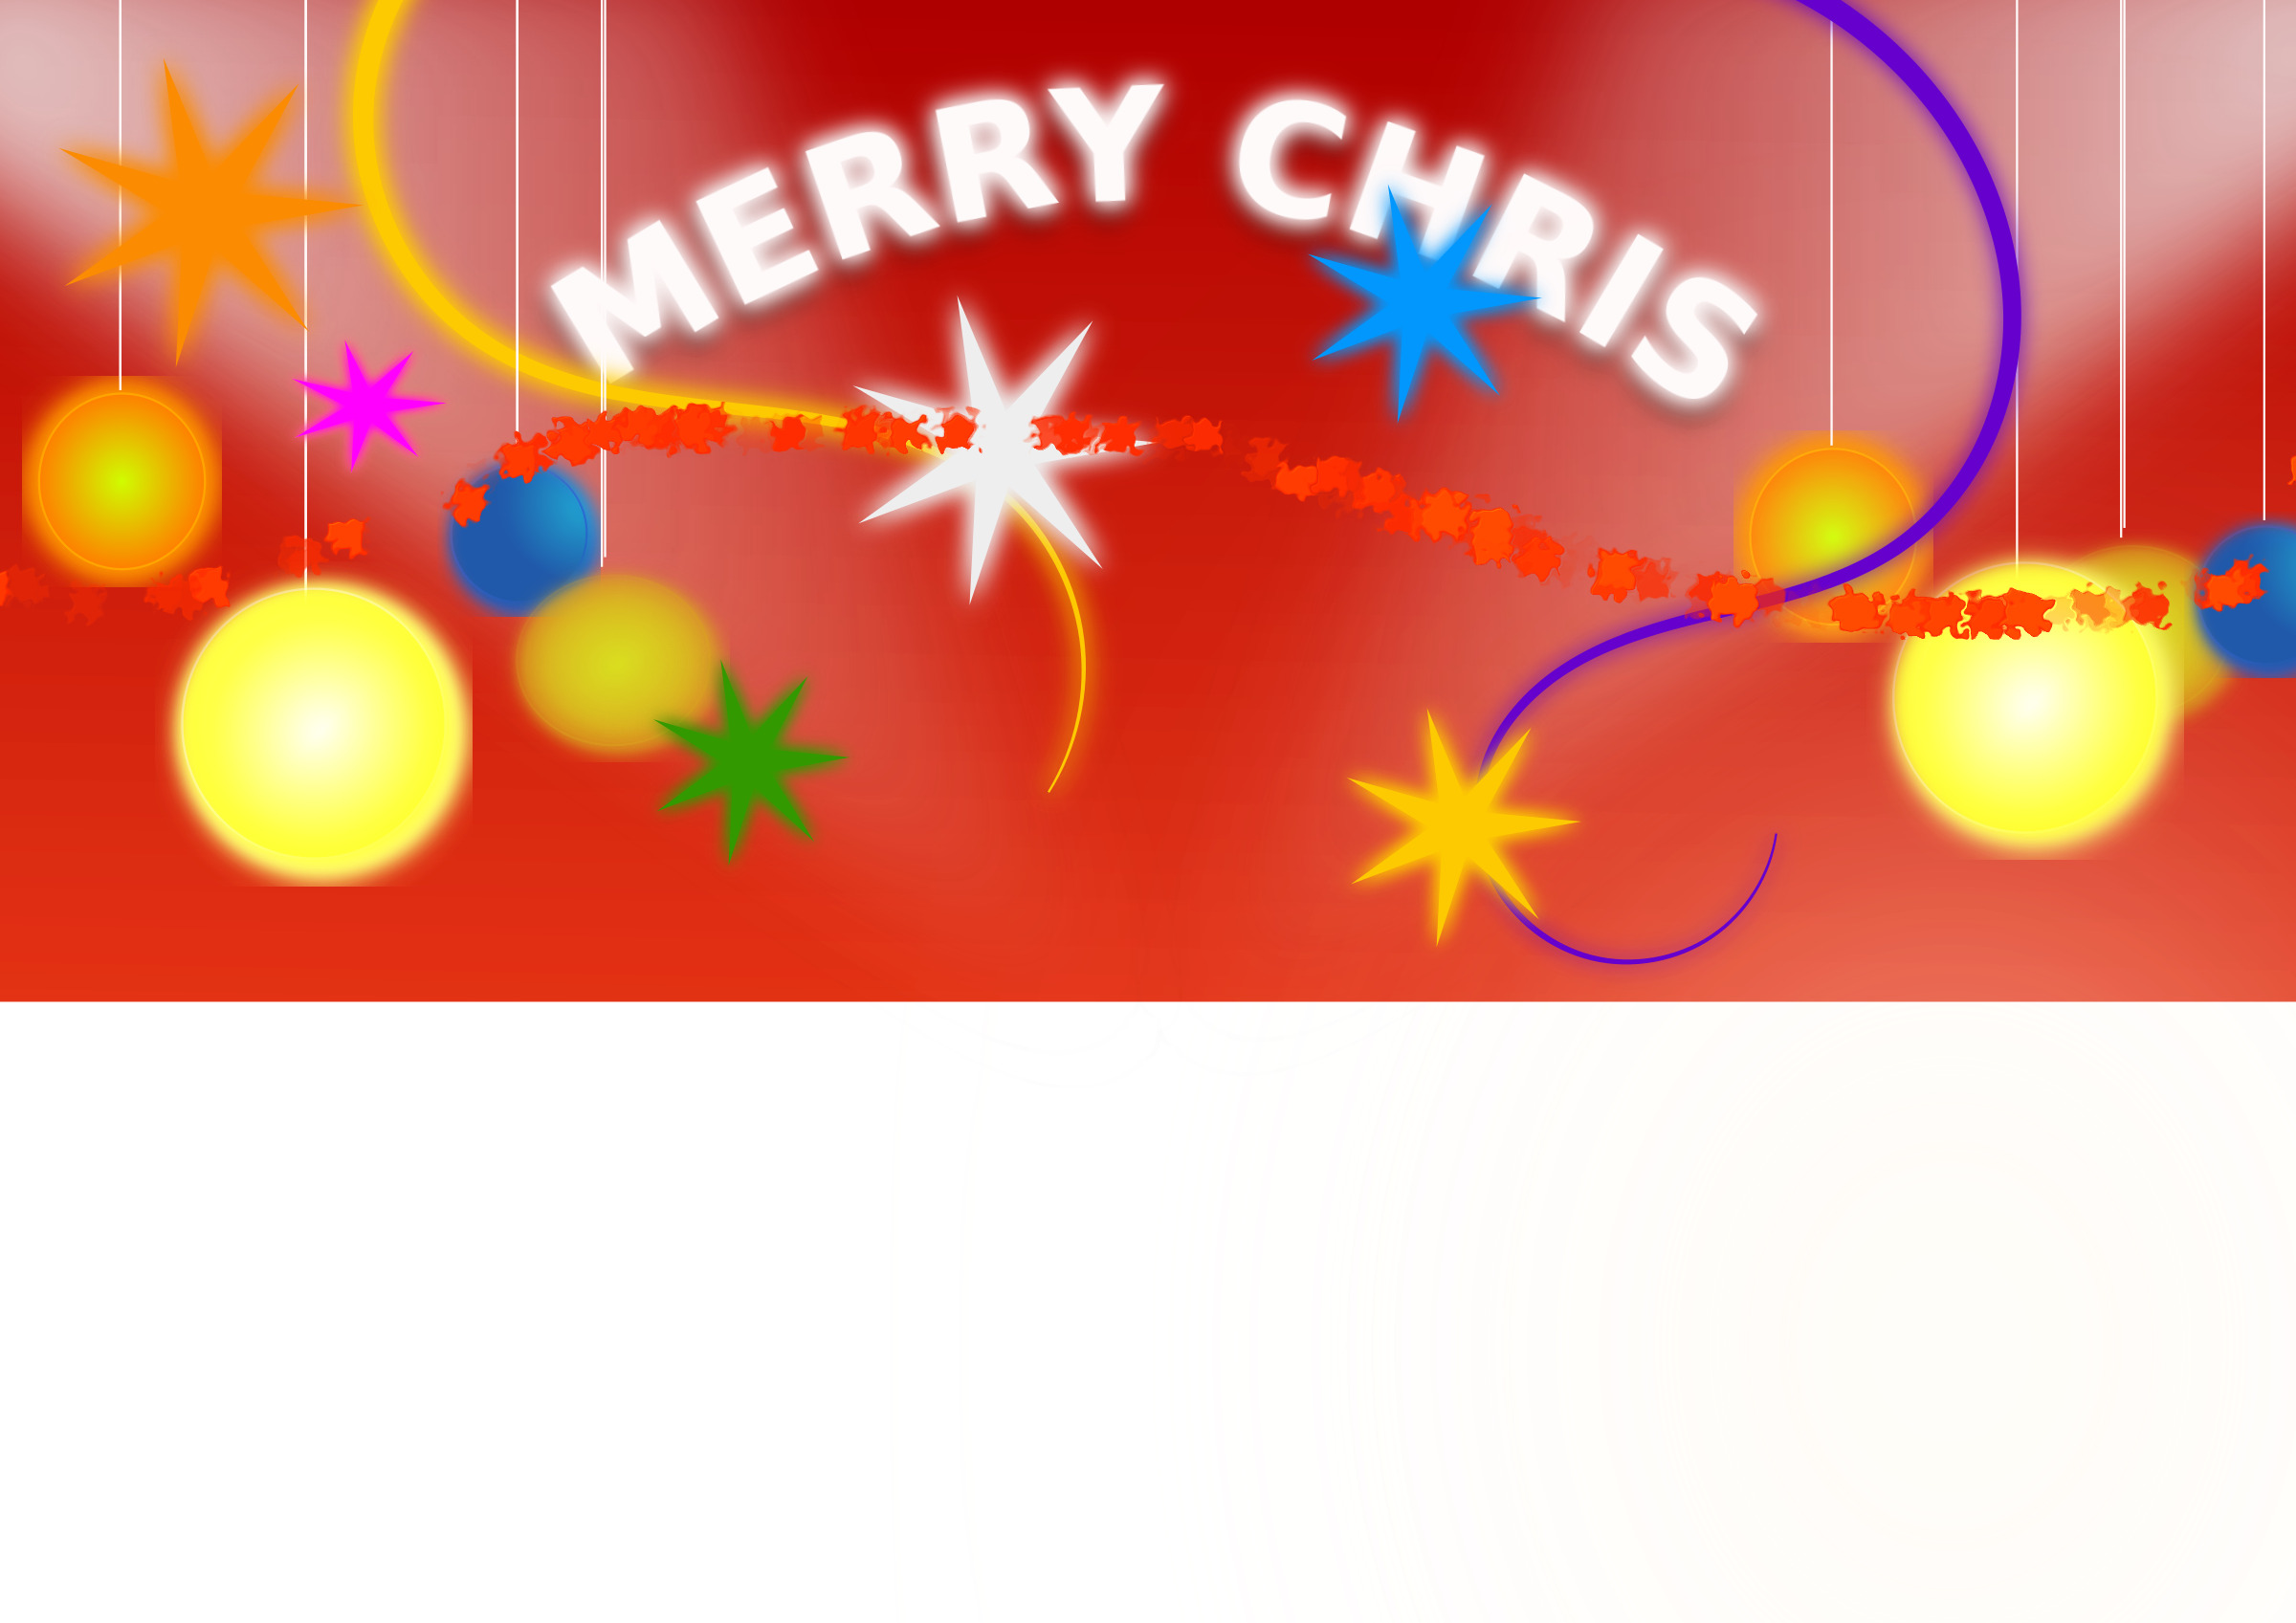 Christmas clipart banners graphic freeuse stock Clipart - Christmas Banner graphic freeuse stock